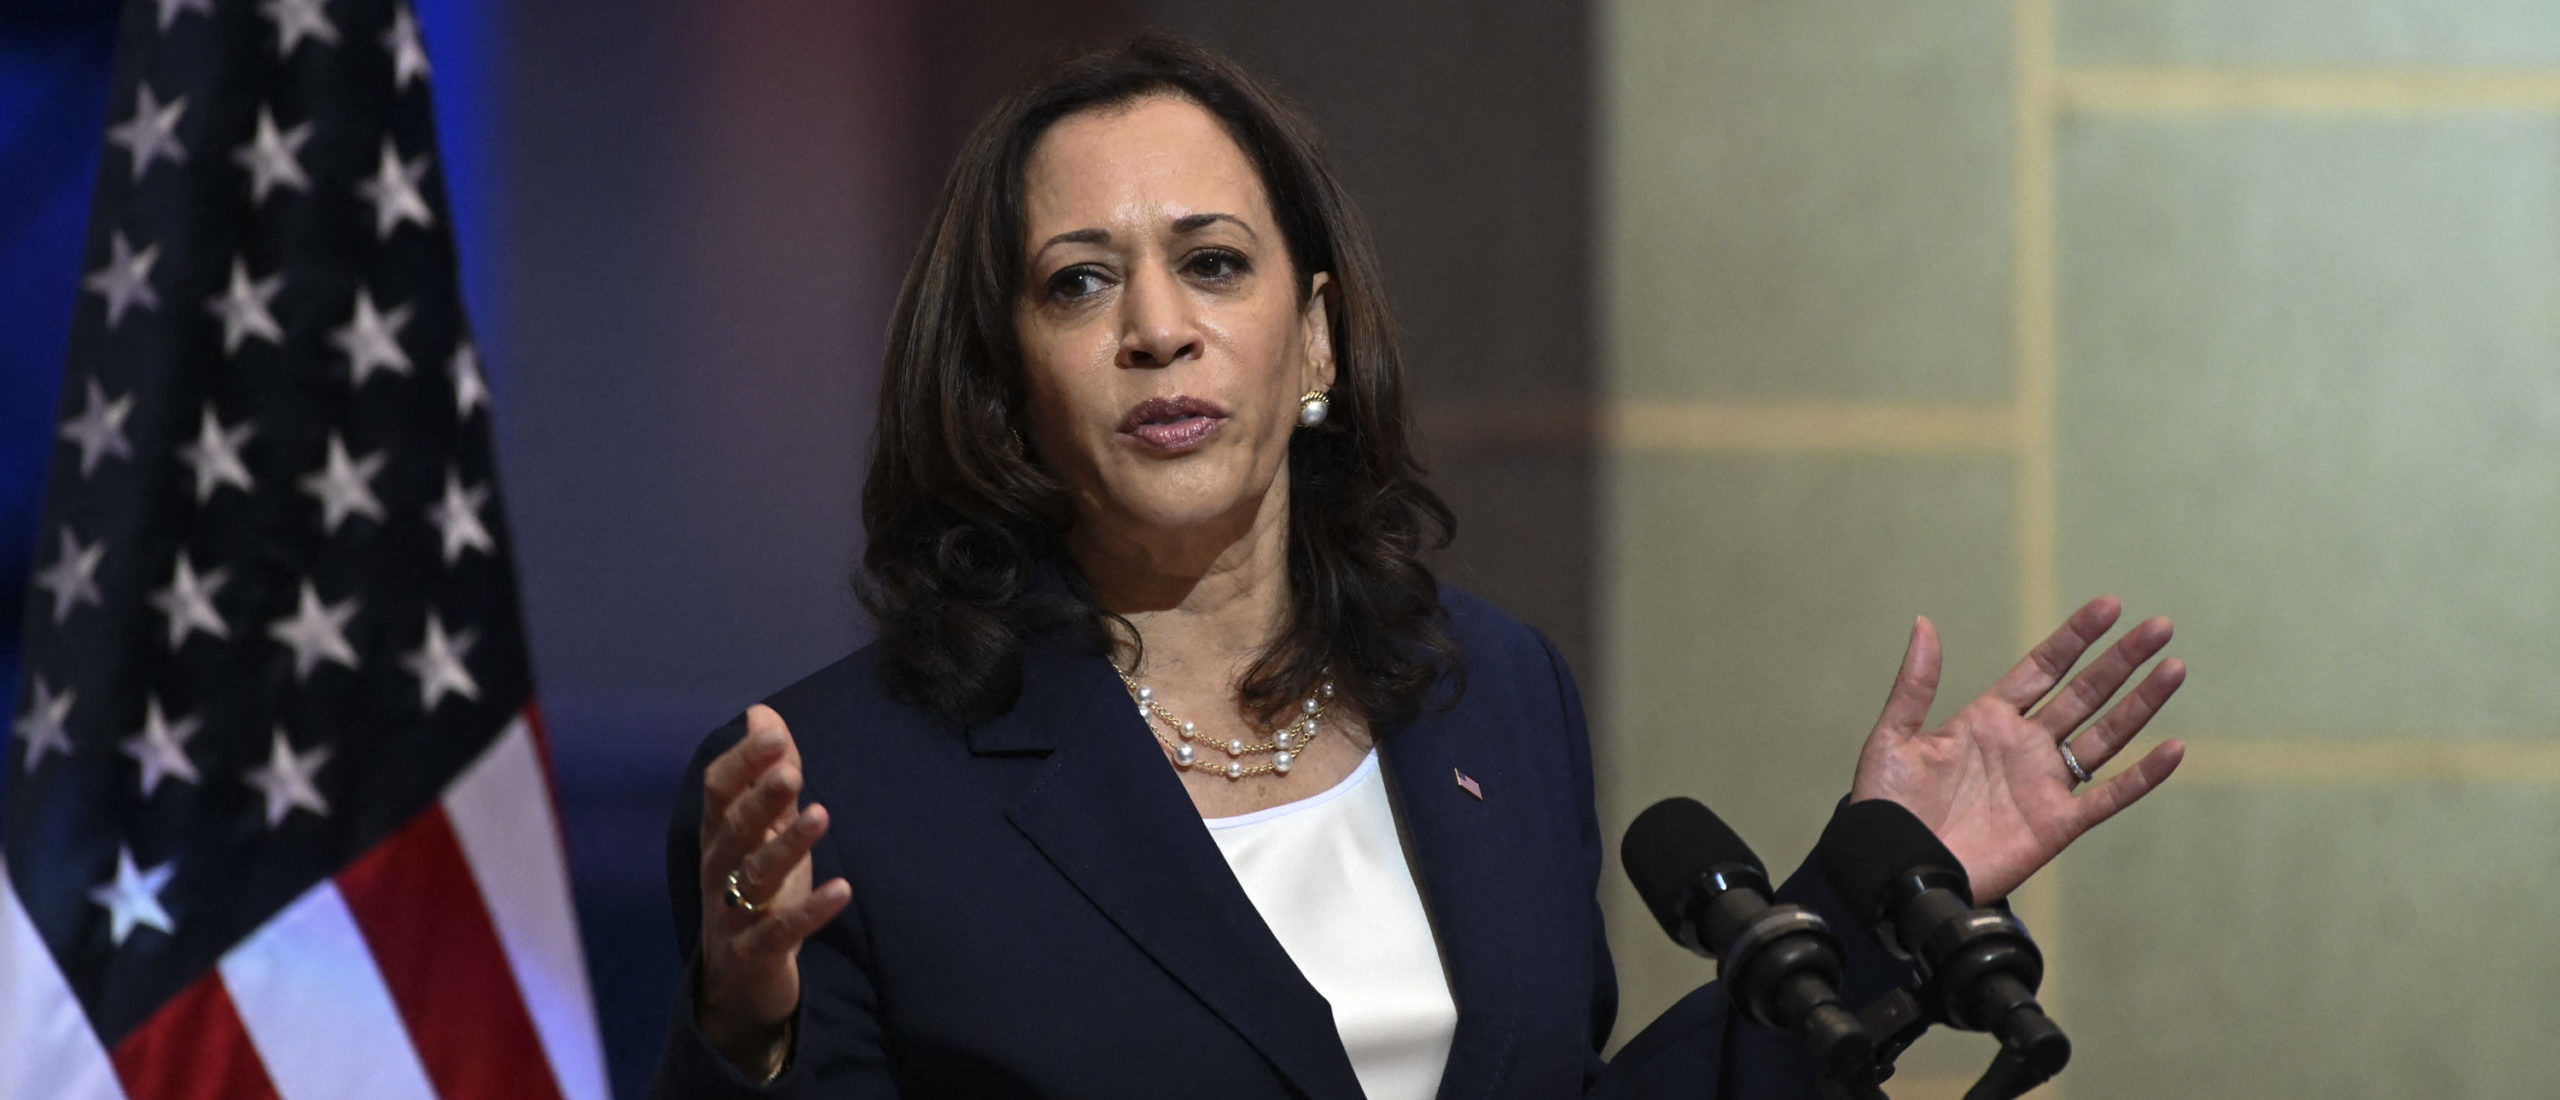 US Vice-President Kamala Harris speaks during a joint press conference with Guatemalan President Alejandro Giammattei (out of frame) at the Culture Palace in Guatemala City on June 7, 2021. (Photo by JOHAN ORDONEZ/AFP via Getty Images)